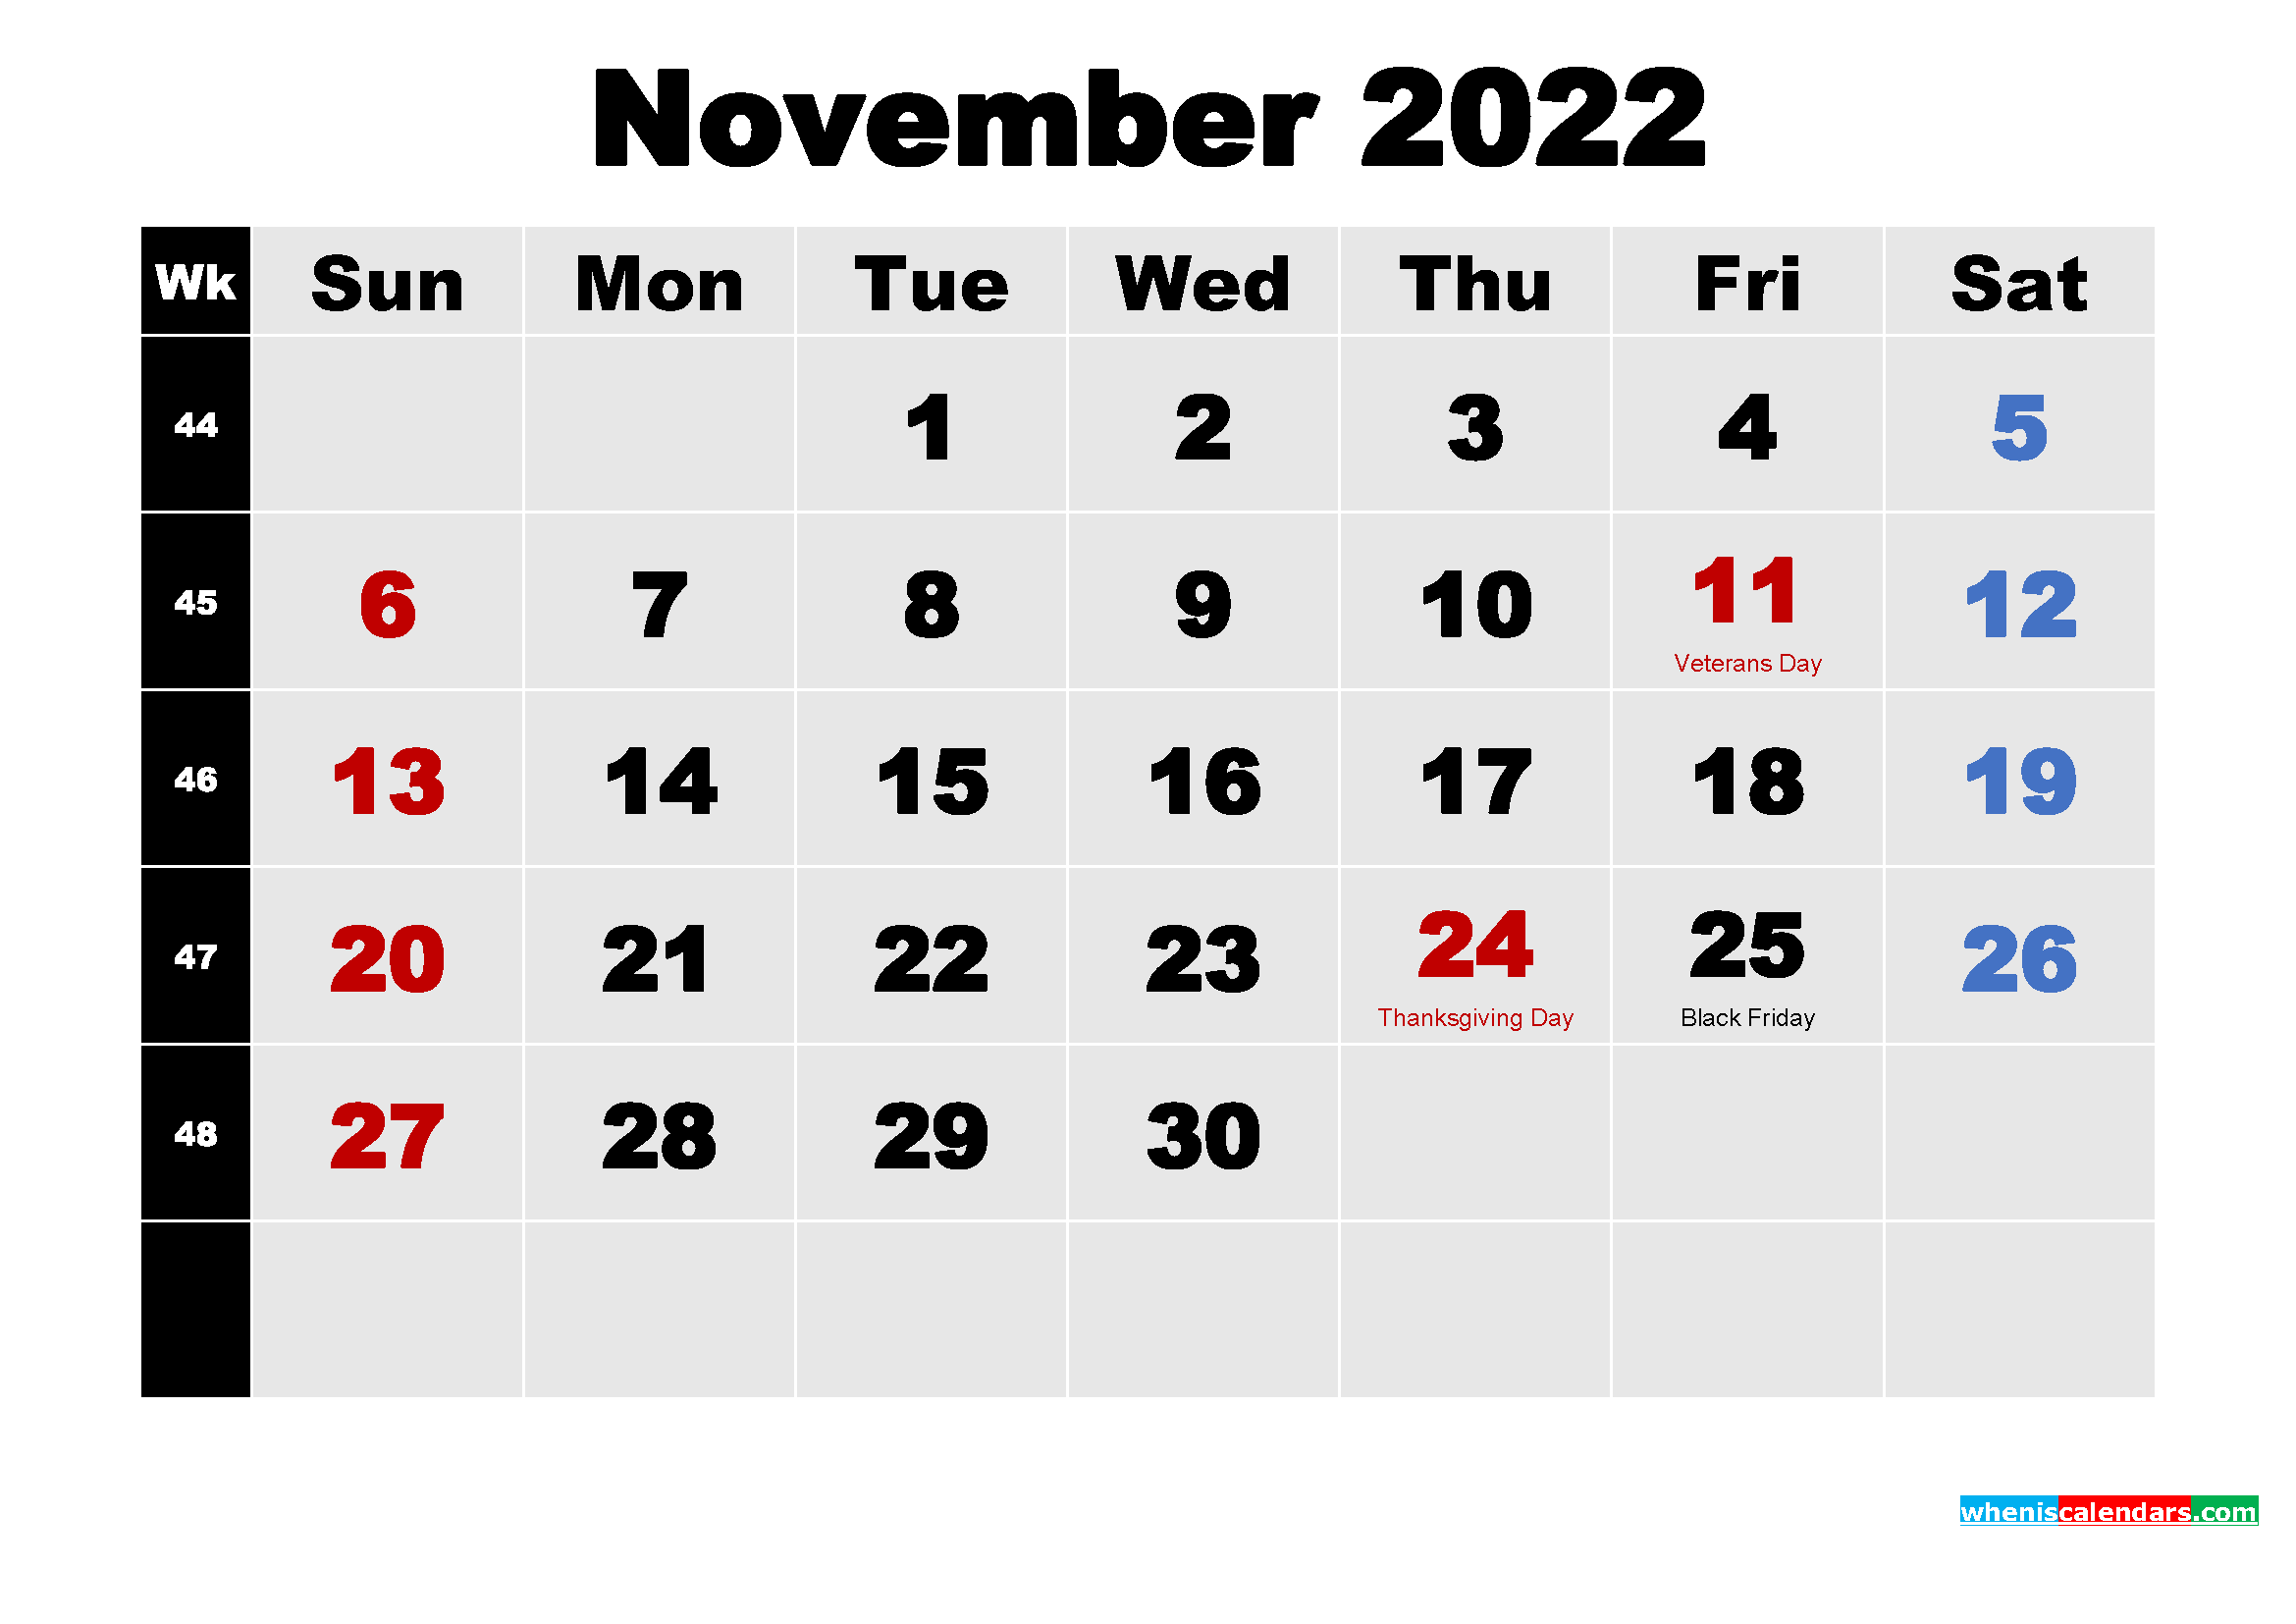 November 2022 Calendar with Holidays Wallpaper